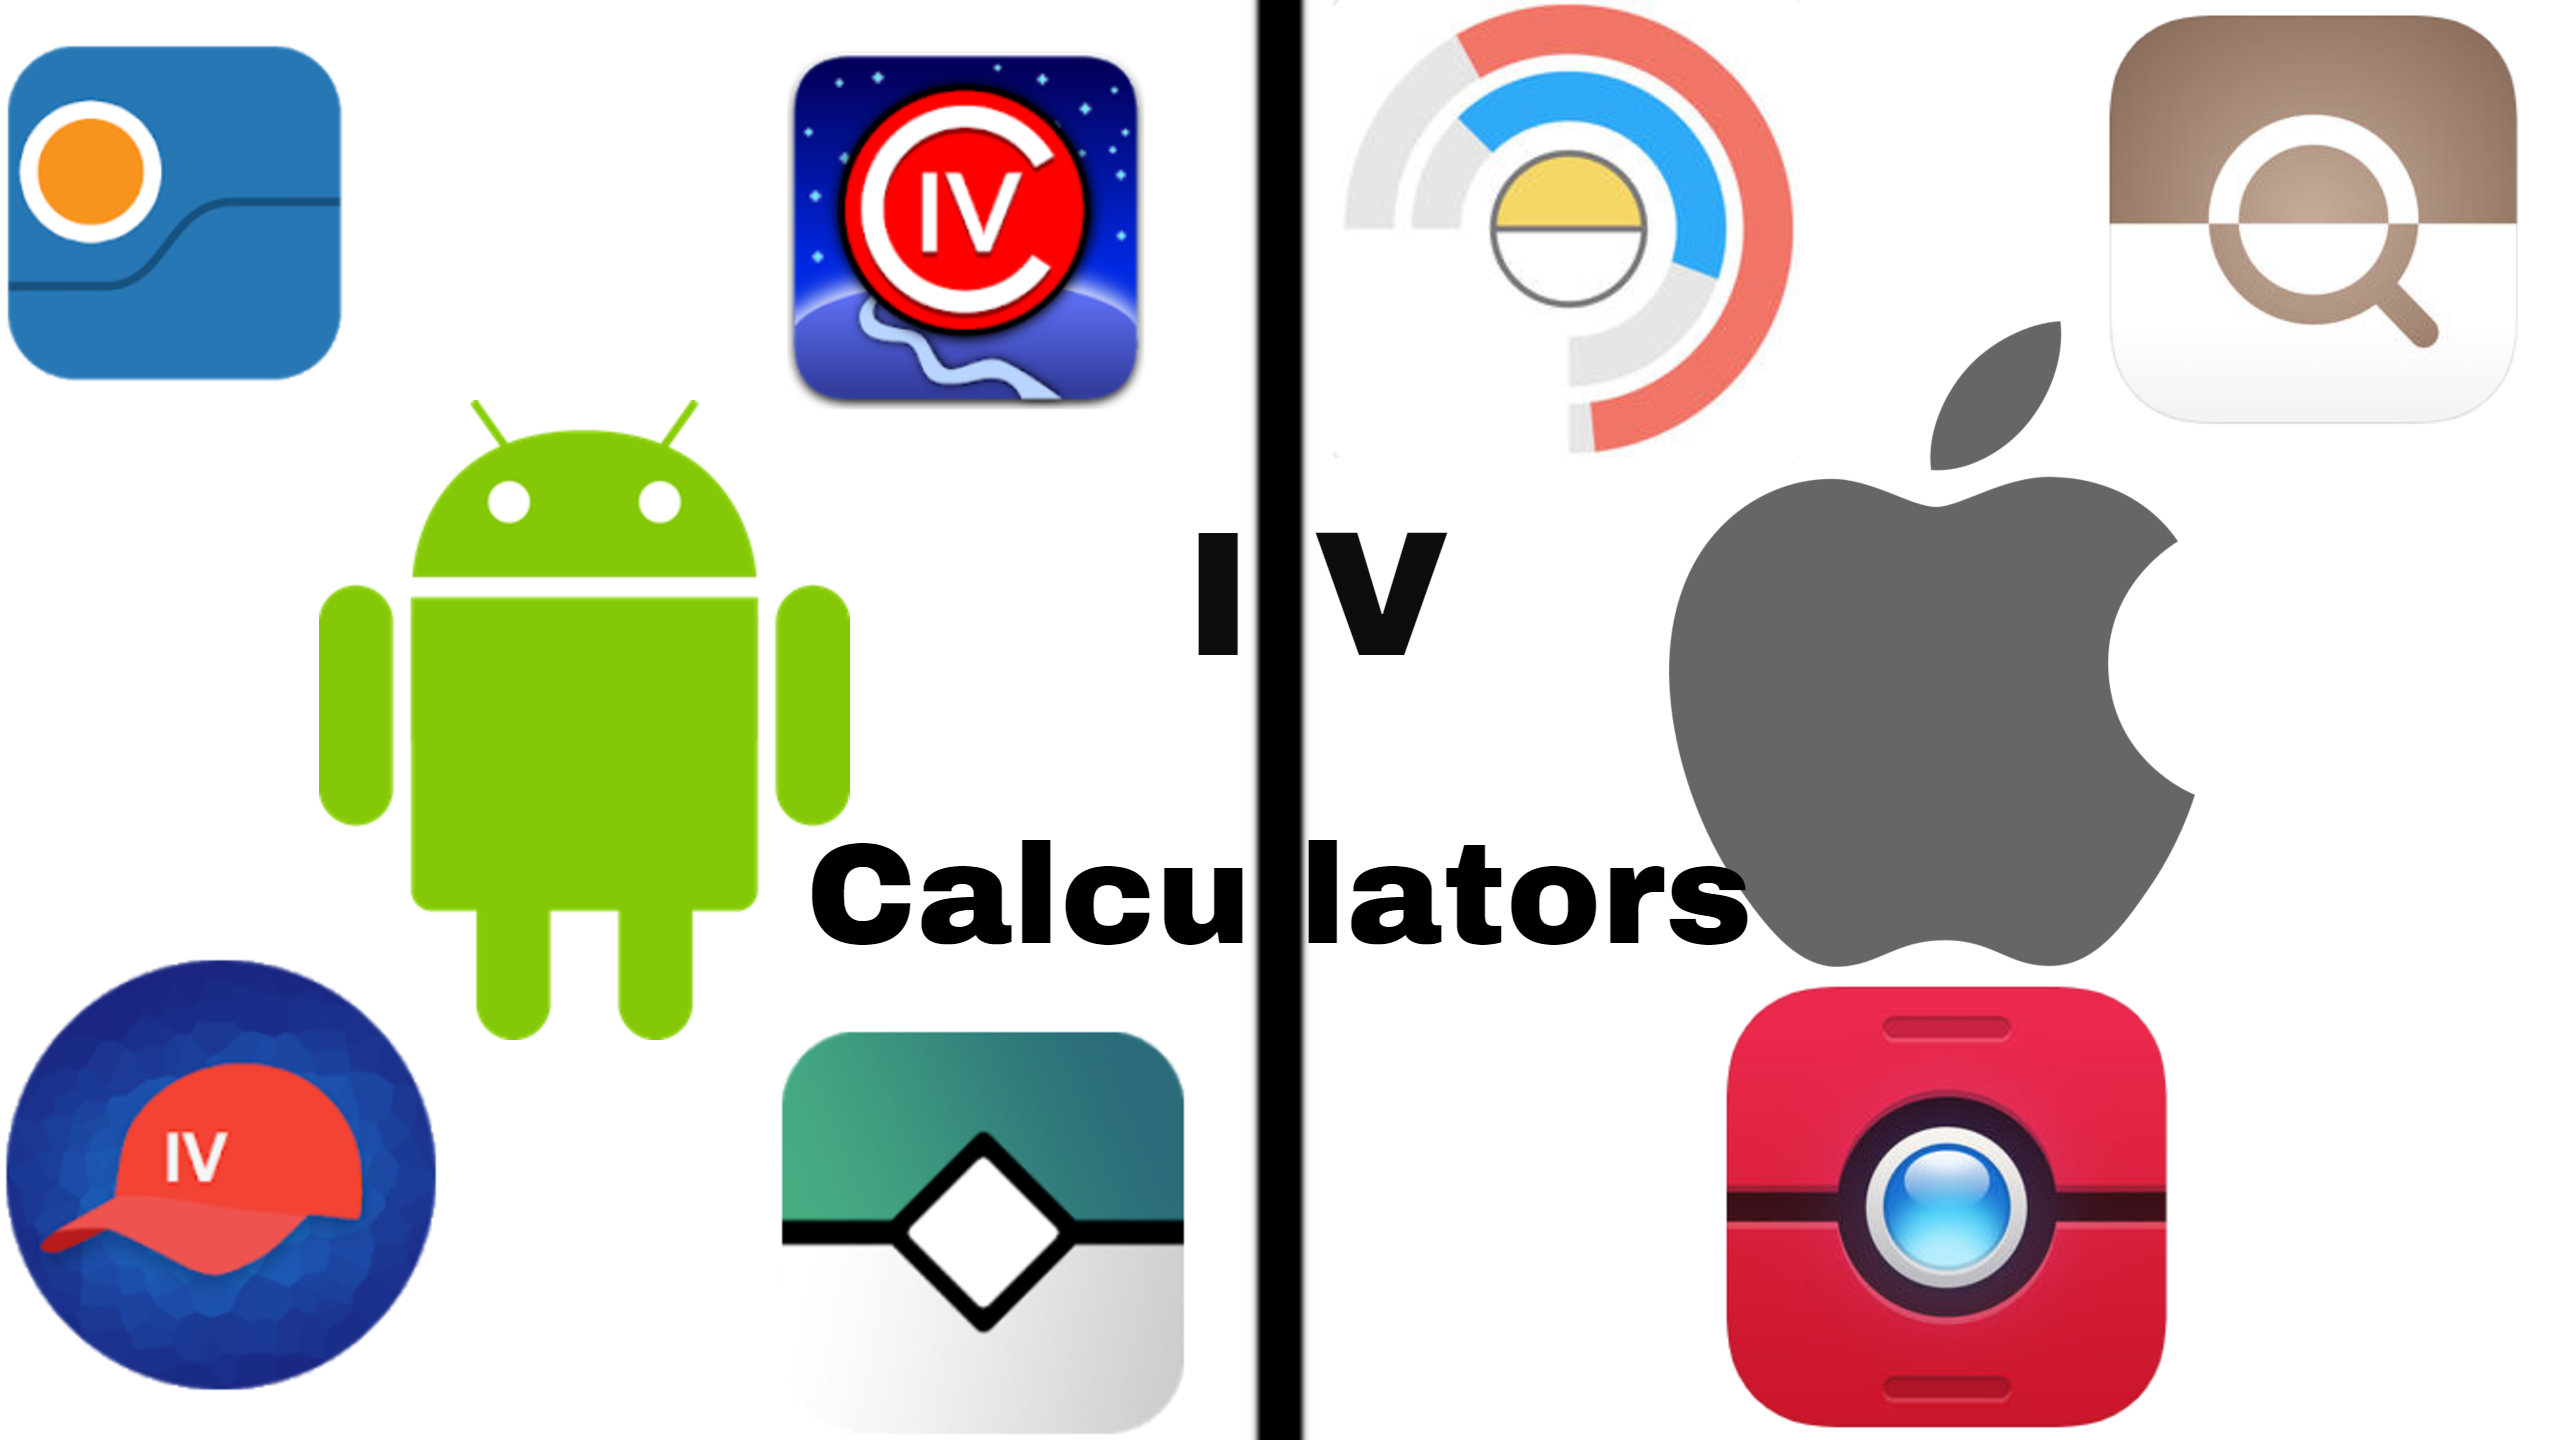 10 Best Pokemon Go IV Calculators for Android and iPhone